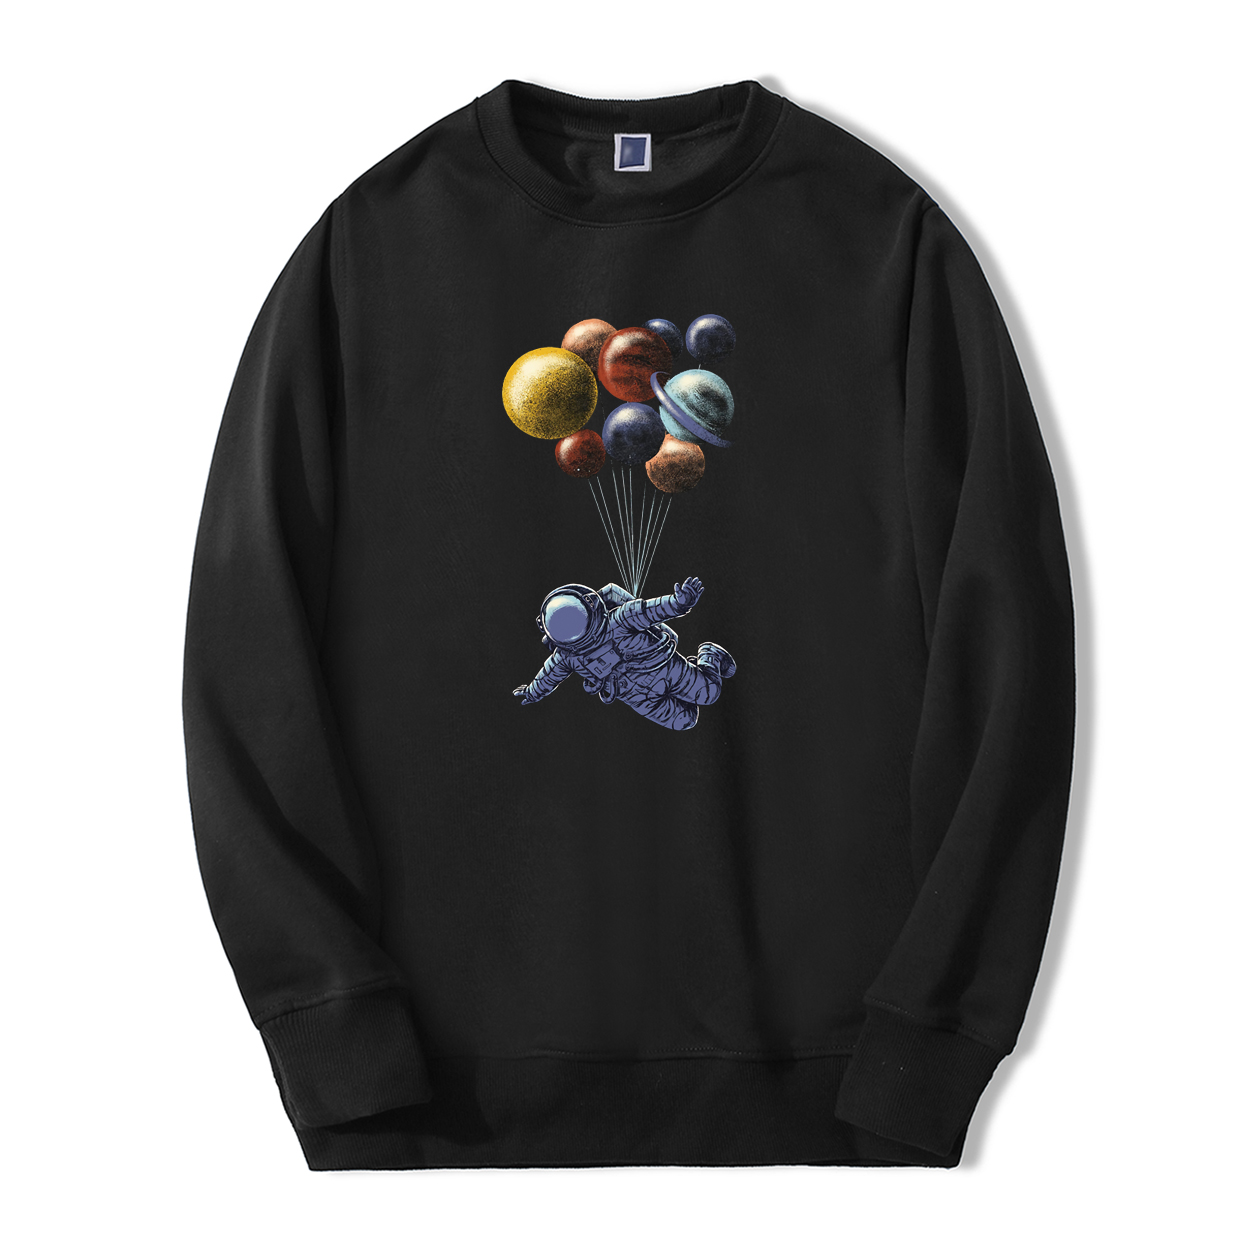 Astronaut Balloon Print Sweatshirts Hoodie Plante Galaxy Men Streetwear Autumn Warm Clothes Bodywarmer Casual Fashion Tracksuit